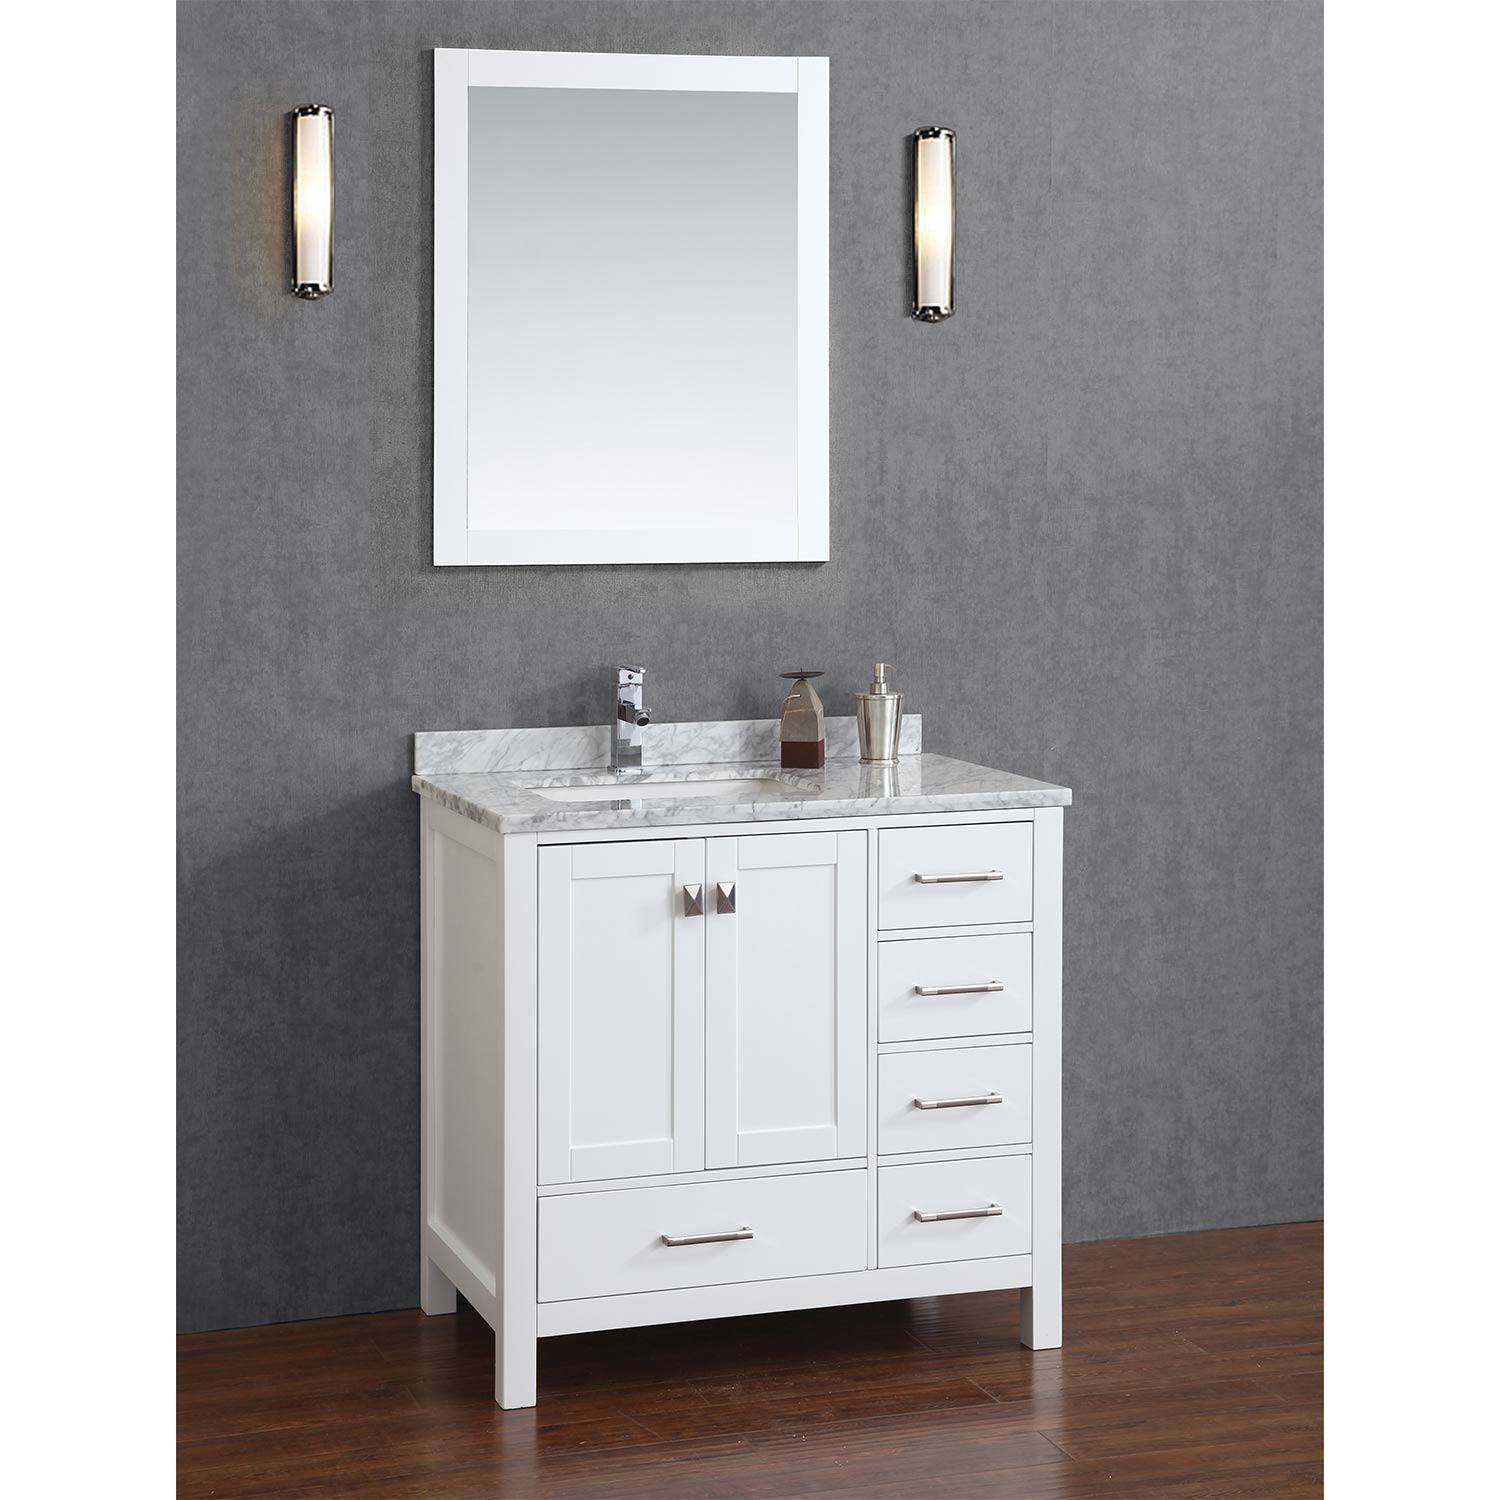 espresso vanities roth poplar home single trends hagen new bath allen small inches bathroom depot projects design inch vanity sink tops with idea shop ideas undermount charming birch lowes impressive